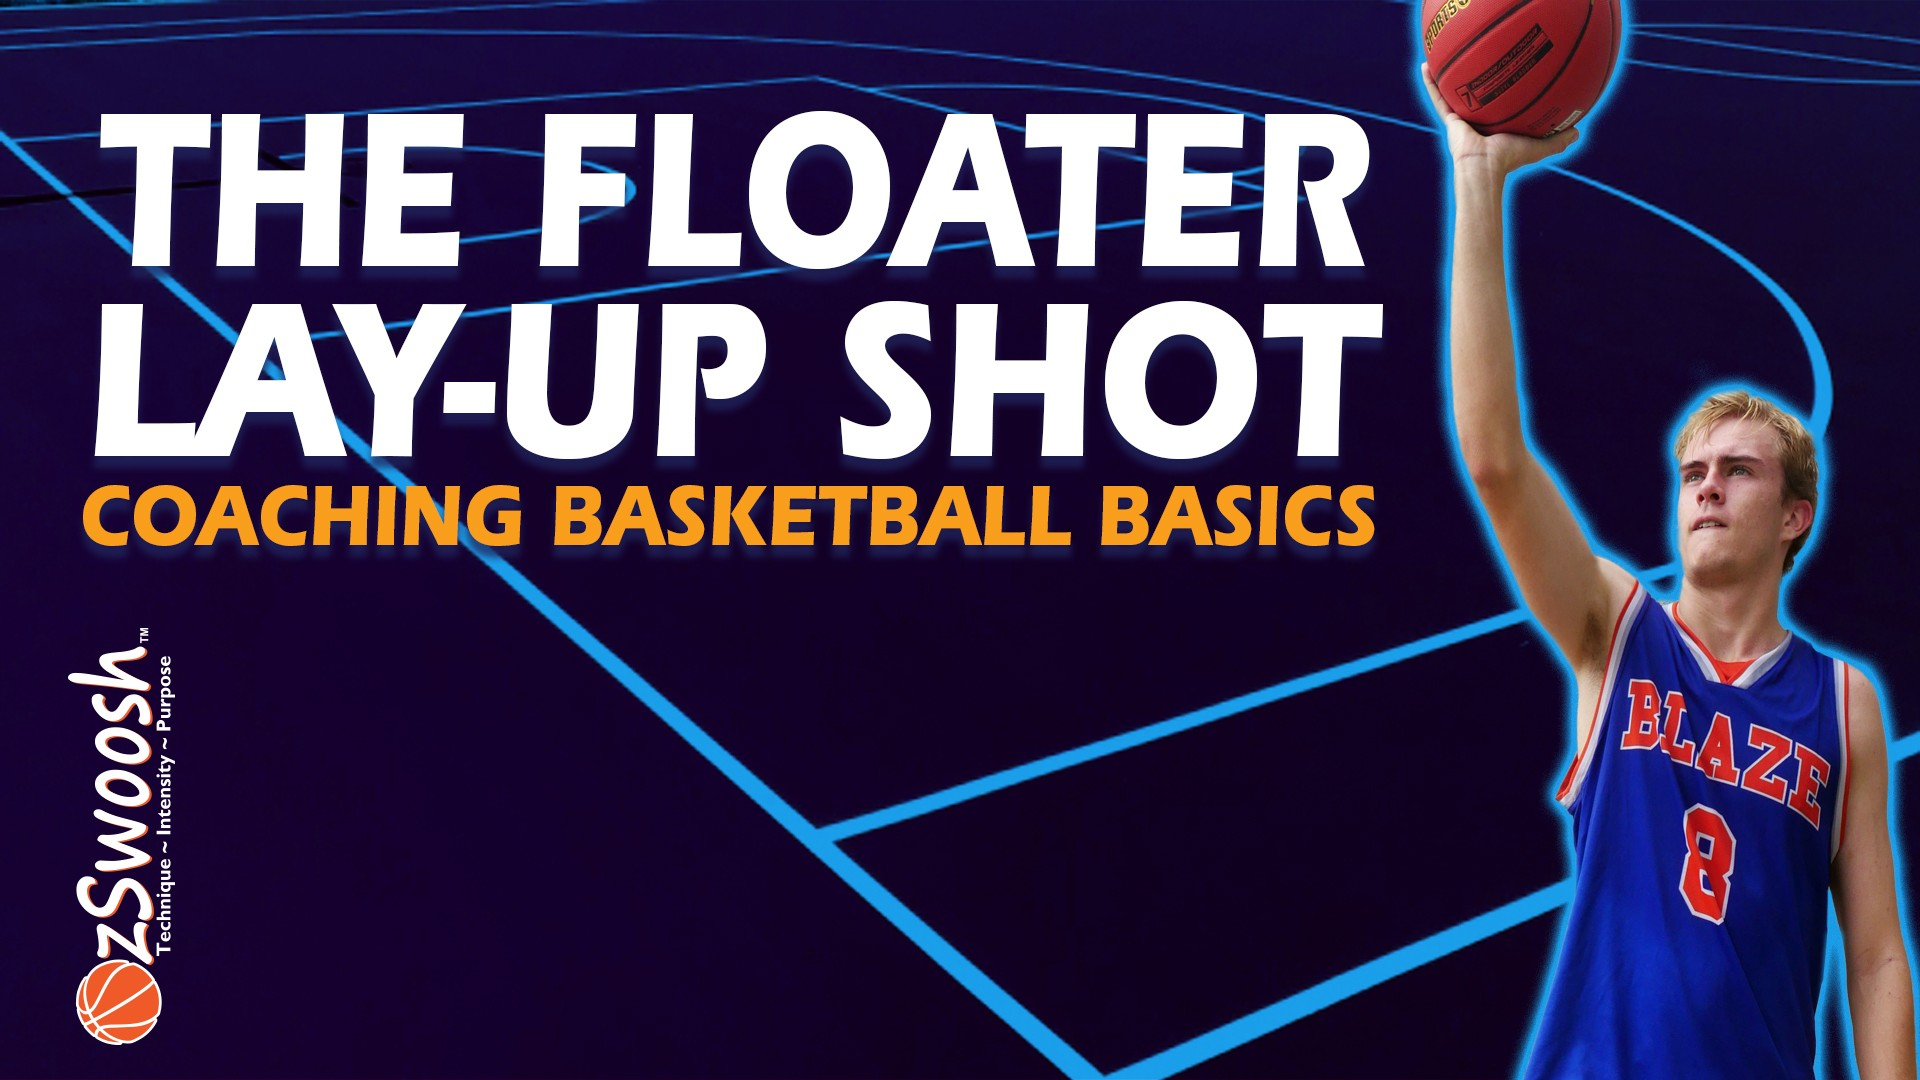 How To Do A Basketball Floater Layup Shot - Coaching Basketball Fundamentals